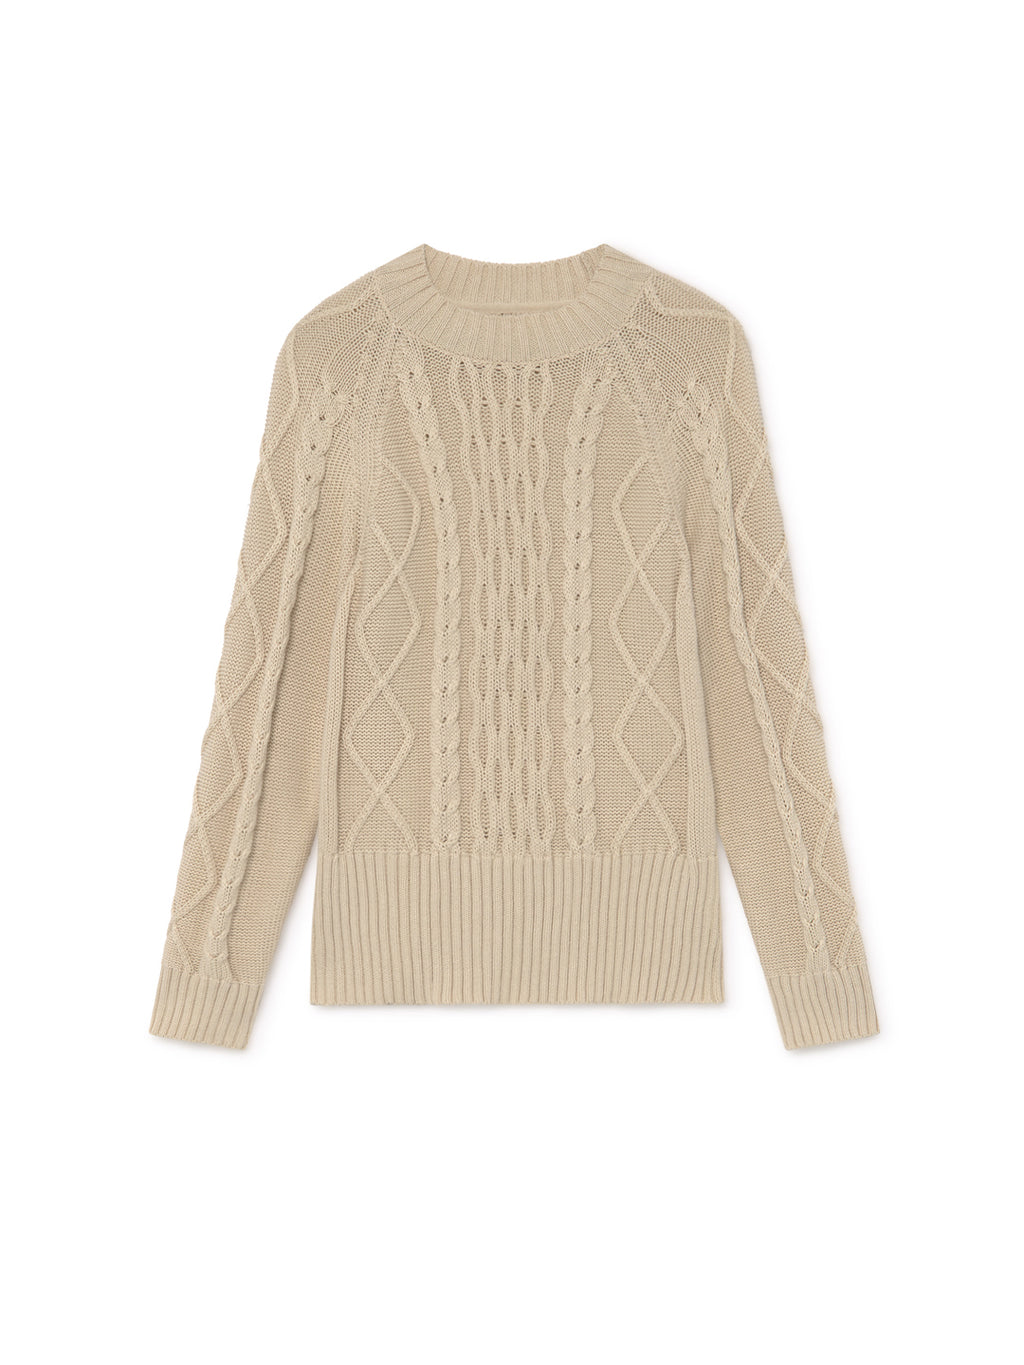 TWOTHIRDS Womens Knit: Pamalican - Ecrue front